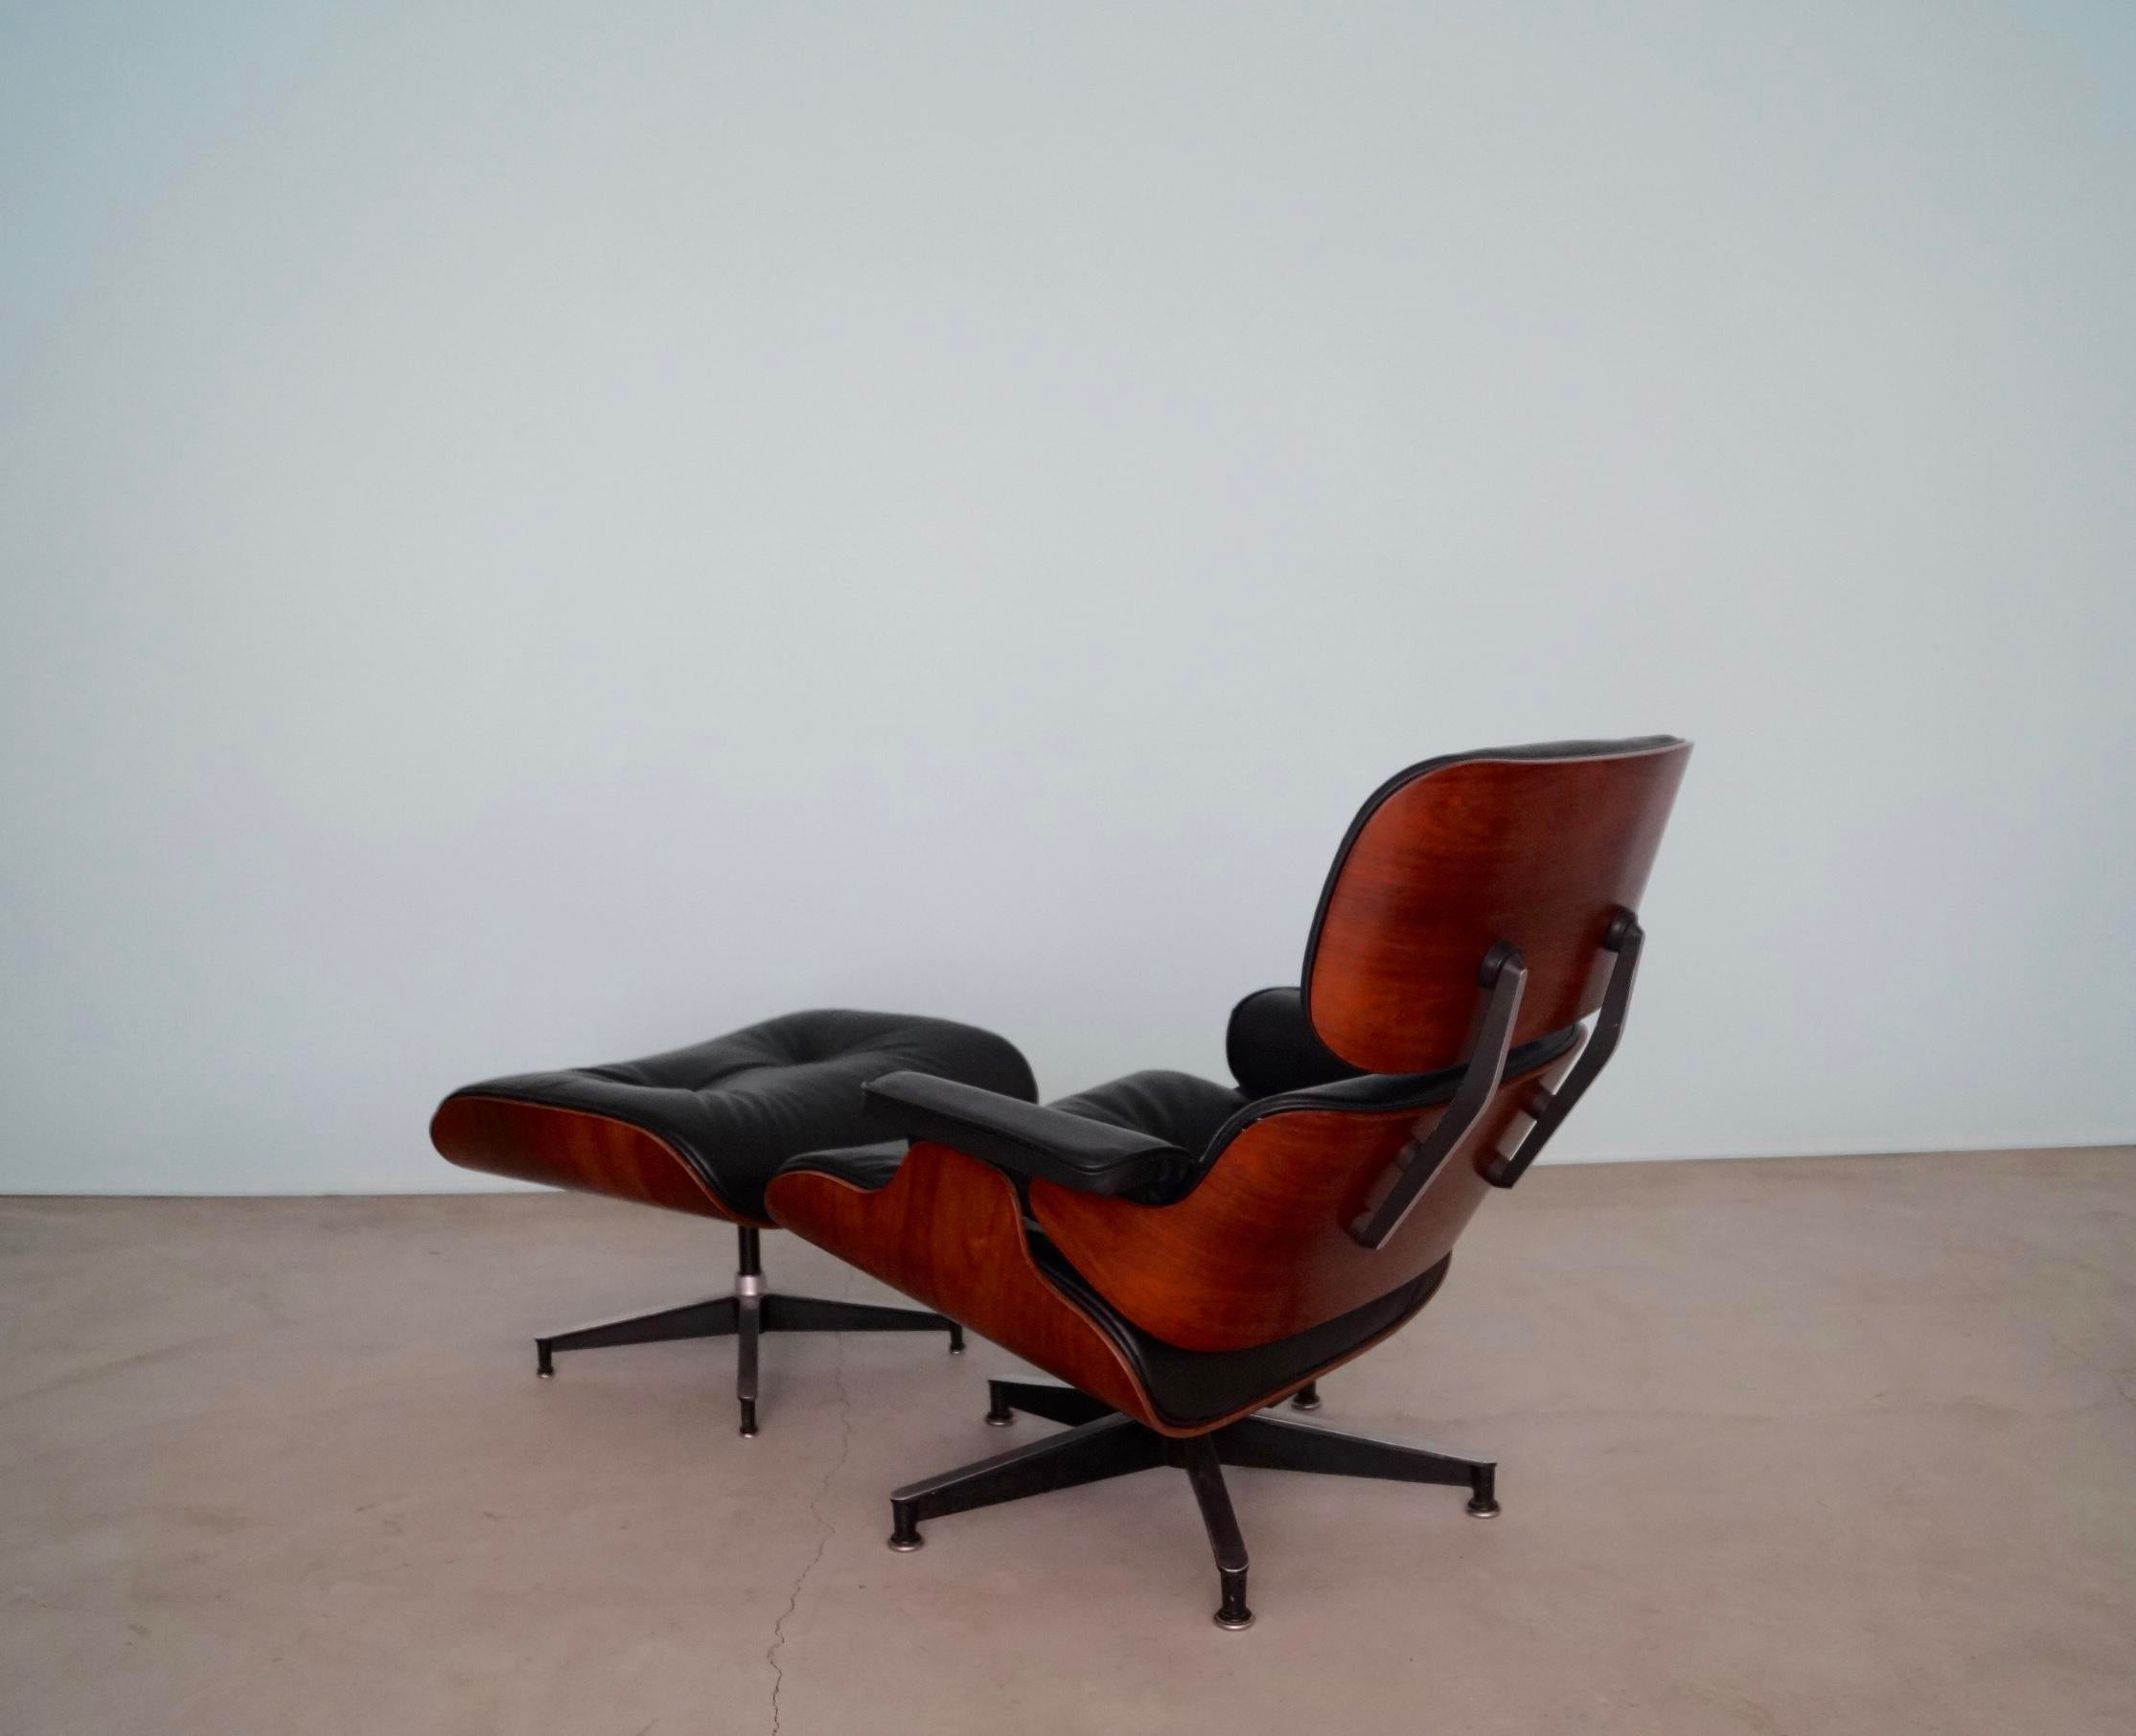 1960s Early Herman Miller Eames Lounge Chair U0026 Ottoman In Rosewood For Sale    Image 5